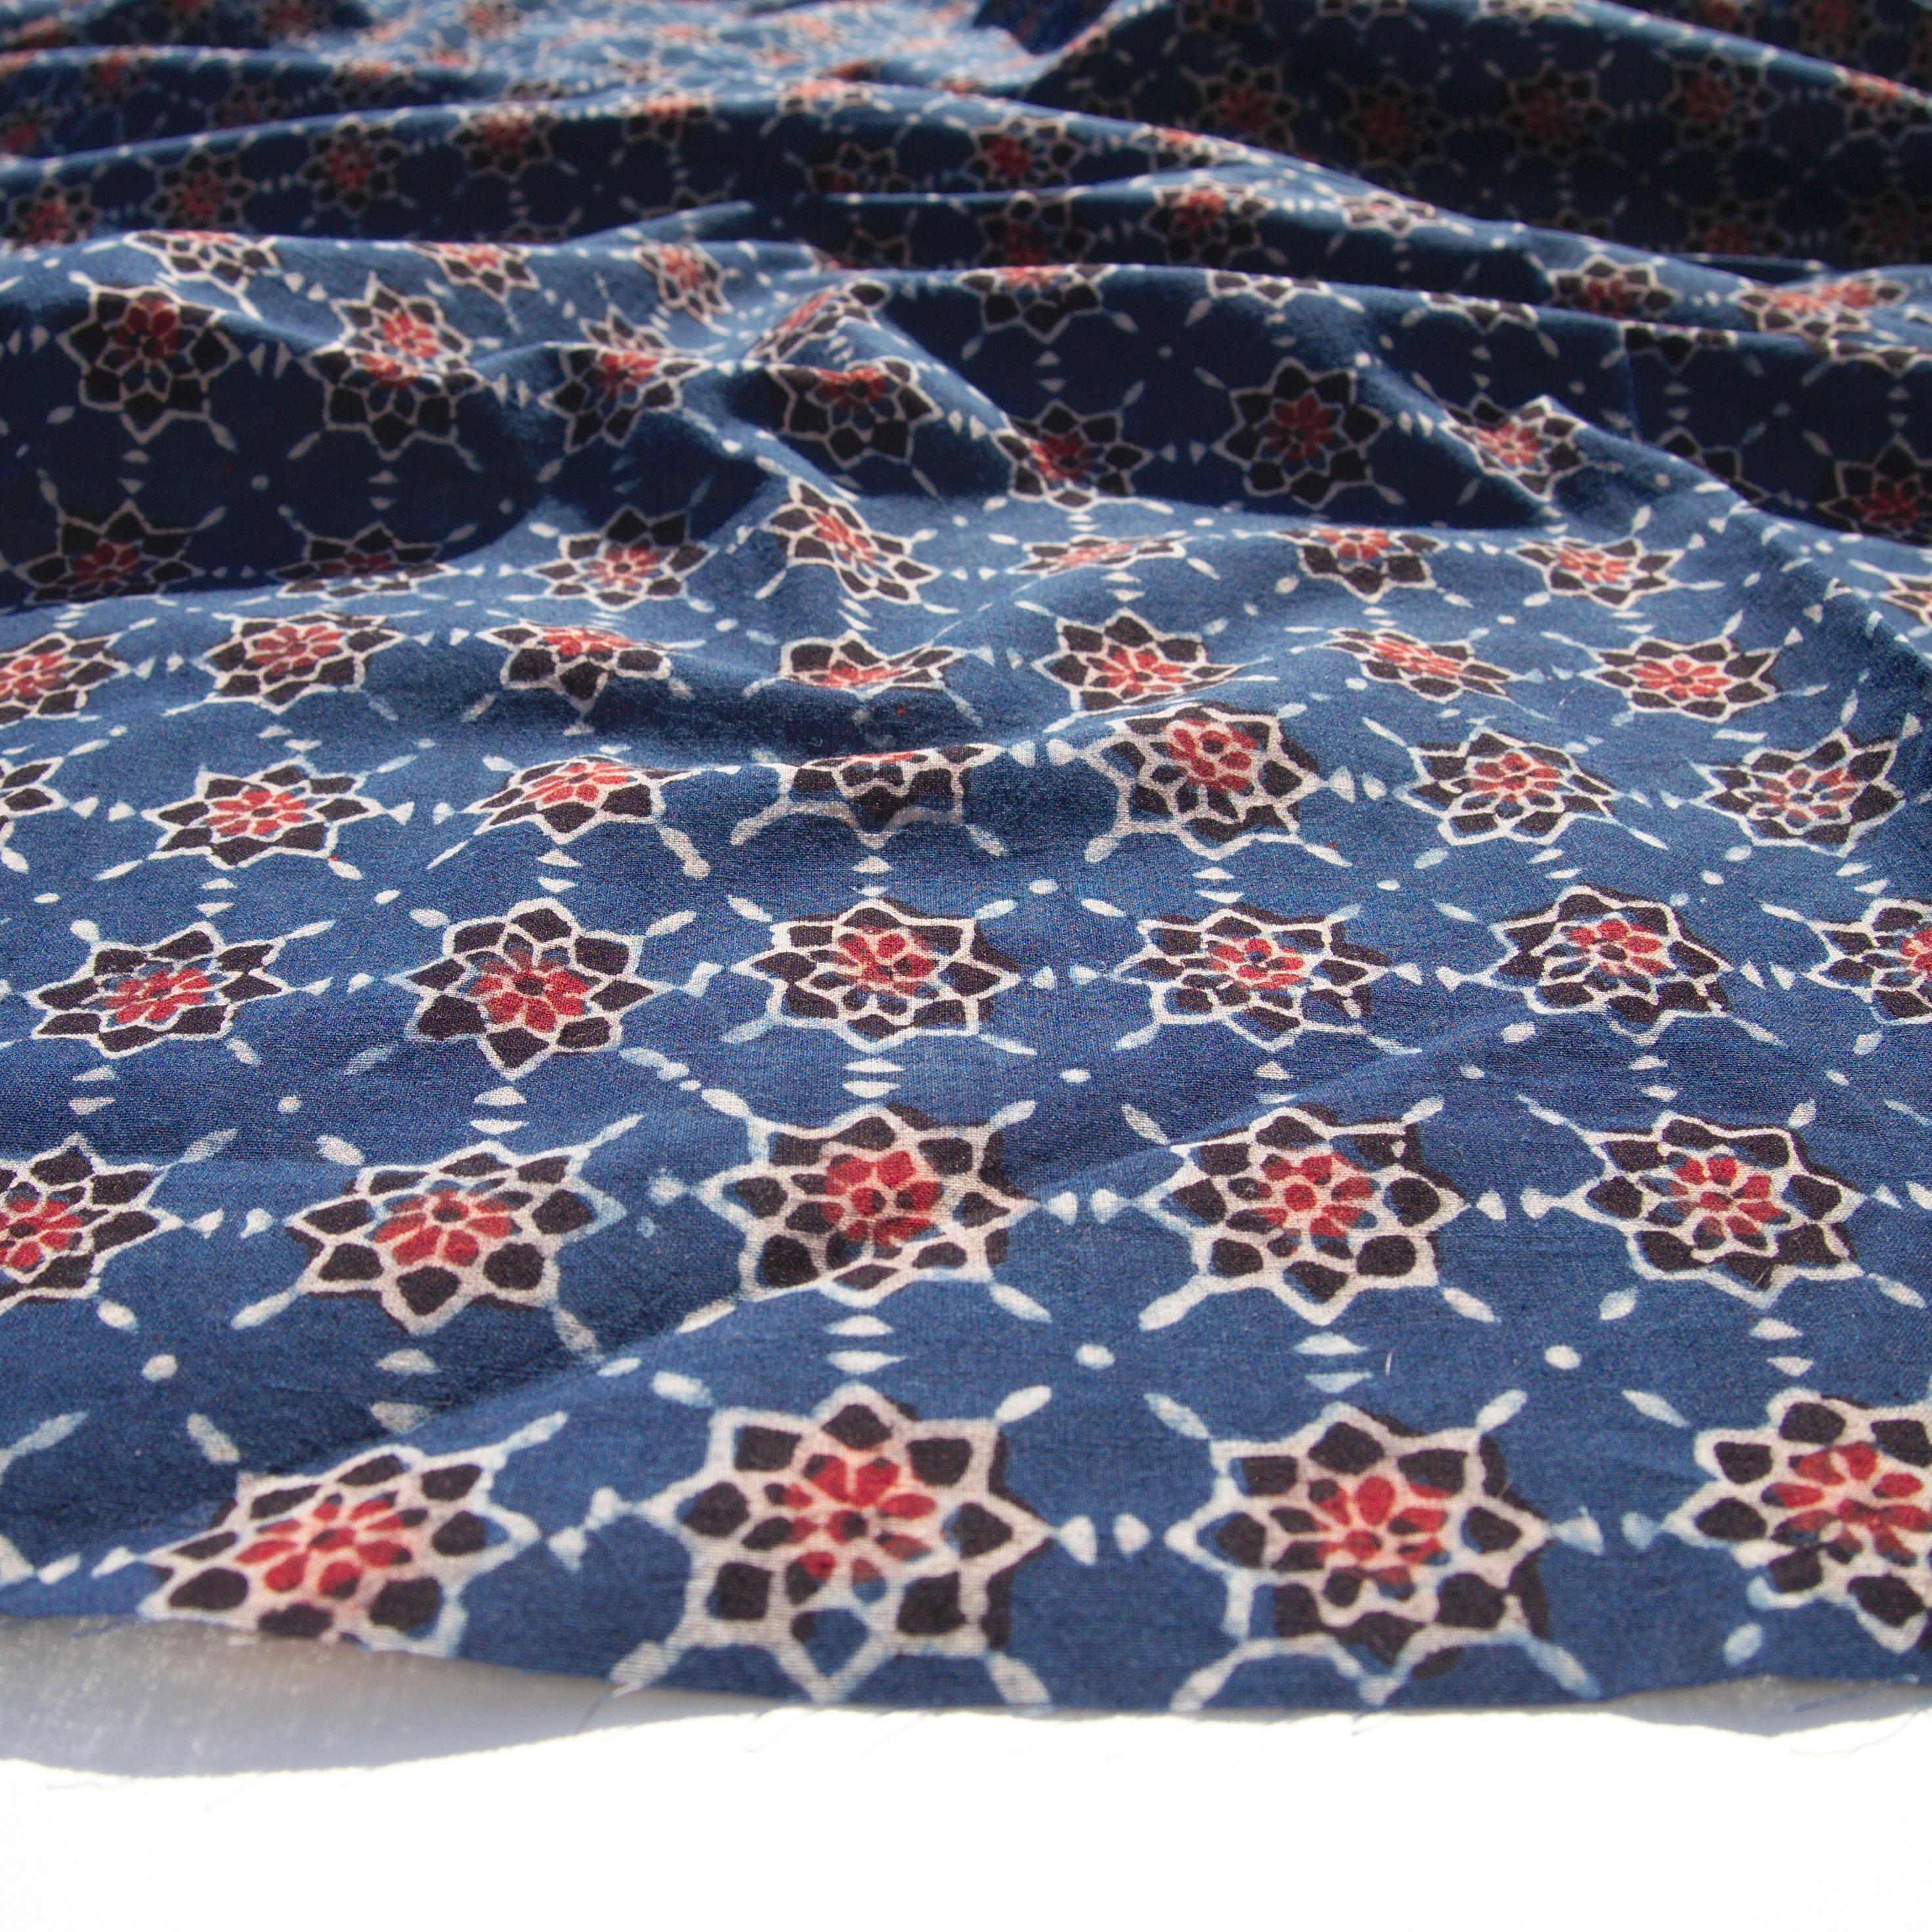 Block Printed Fabric, 100% Cotton, Ajrak Design: Indigo Blue Base, Red, Black Starburst. Angle